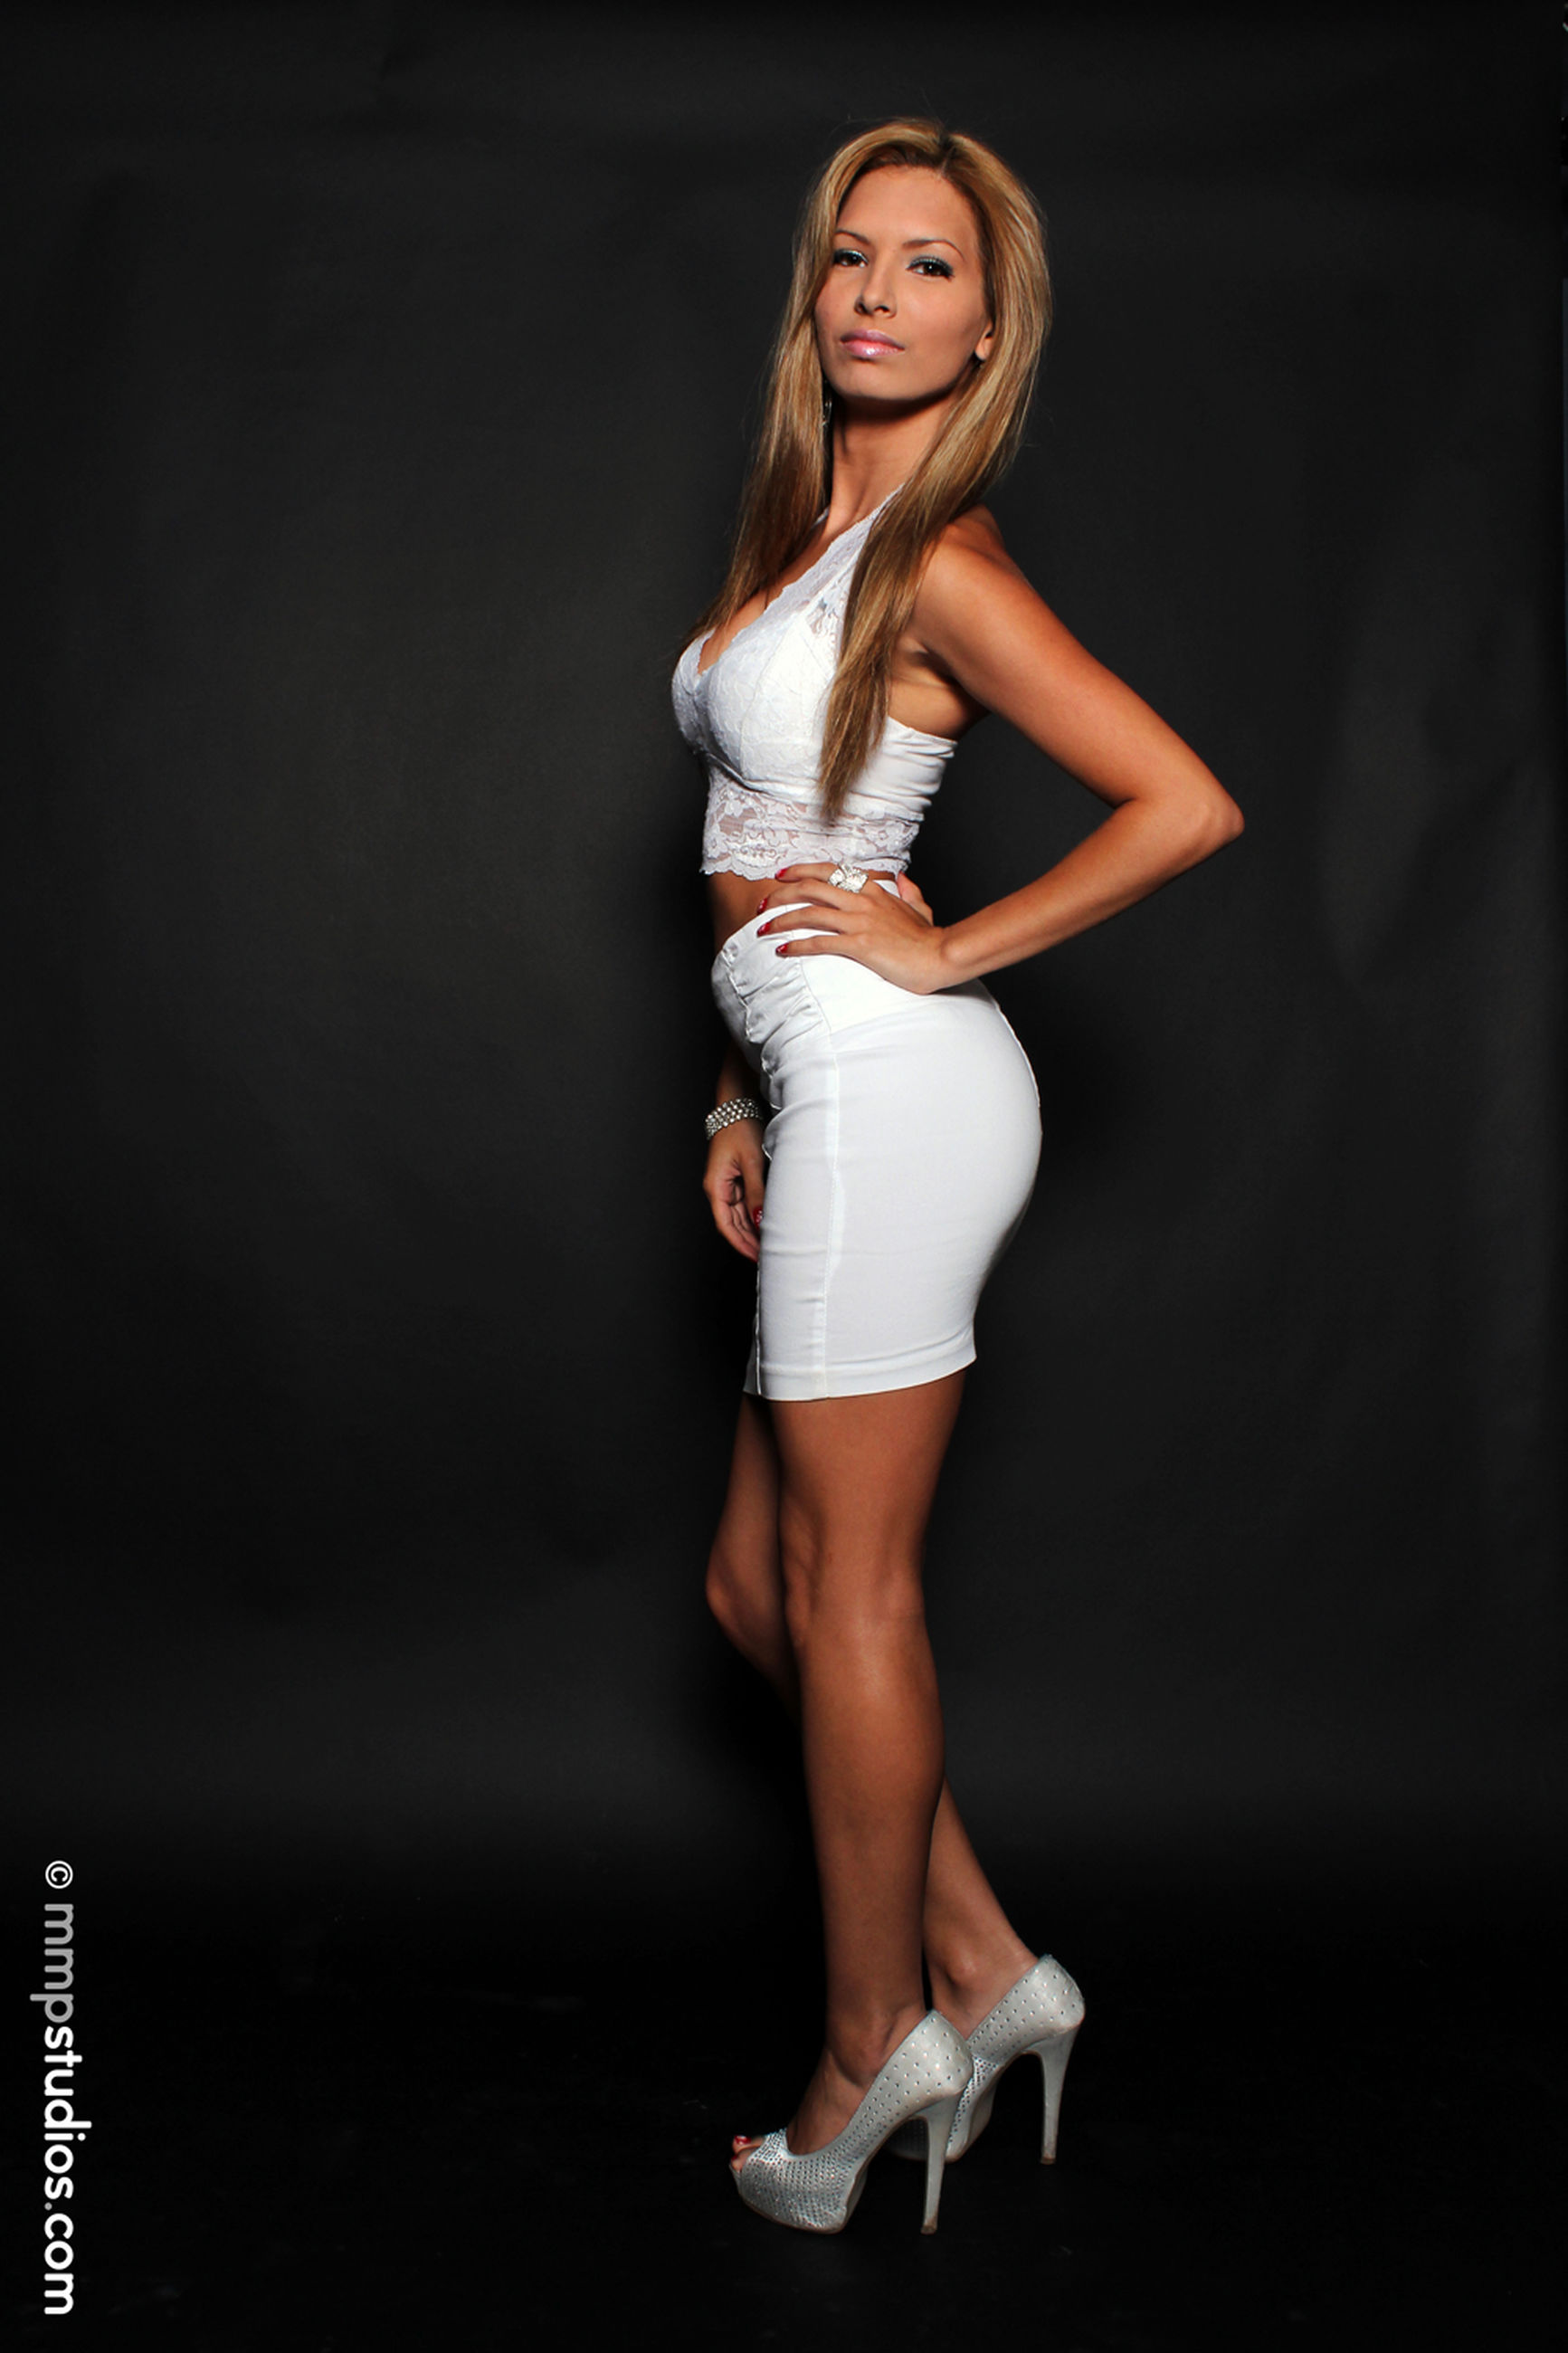 one person, beauty, young women, beautiful woman, young adult, standing, women, portrait, indoors, looking at camera, fashion, full length, hair, blond hair, clothing, black background, studio shot, adult, hairstyle